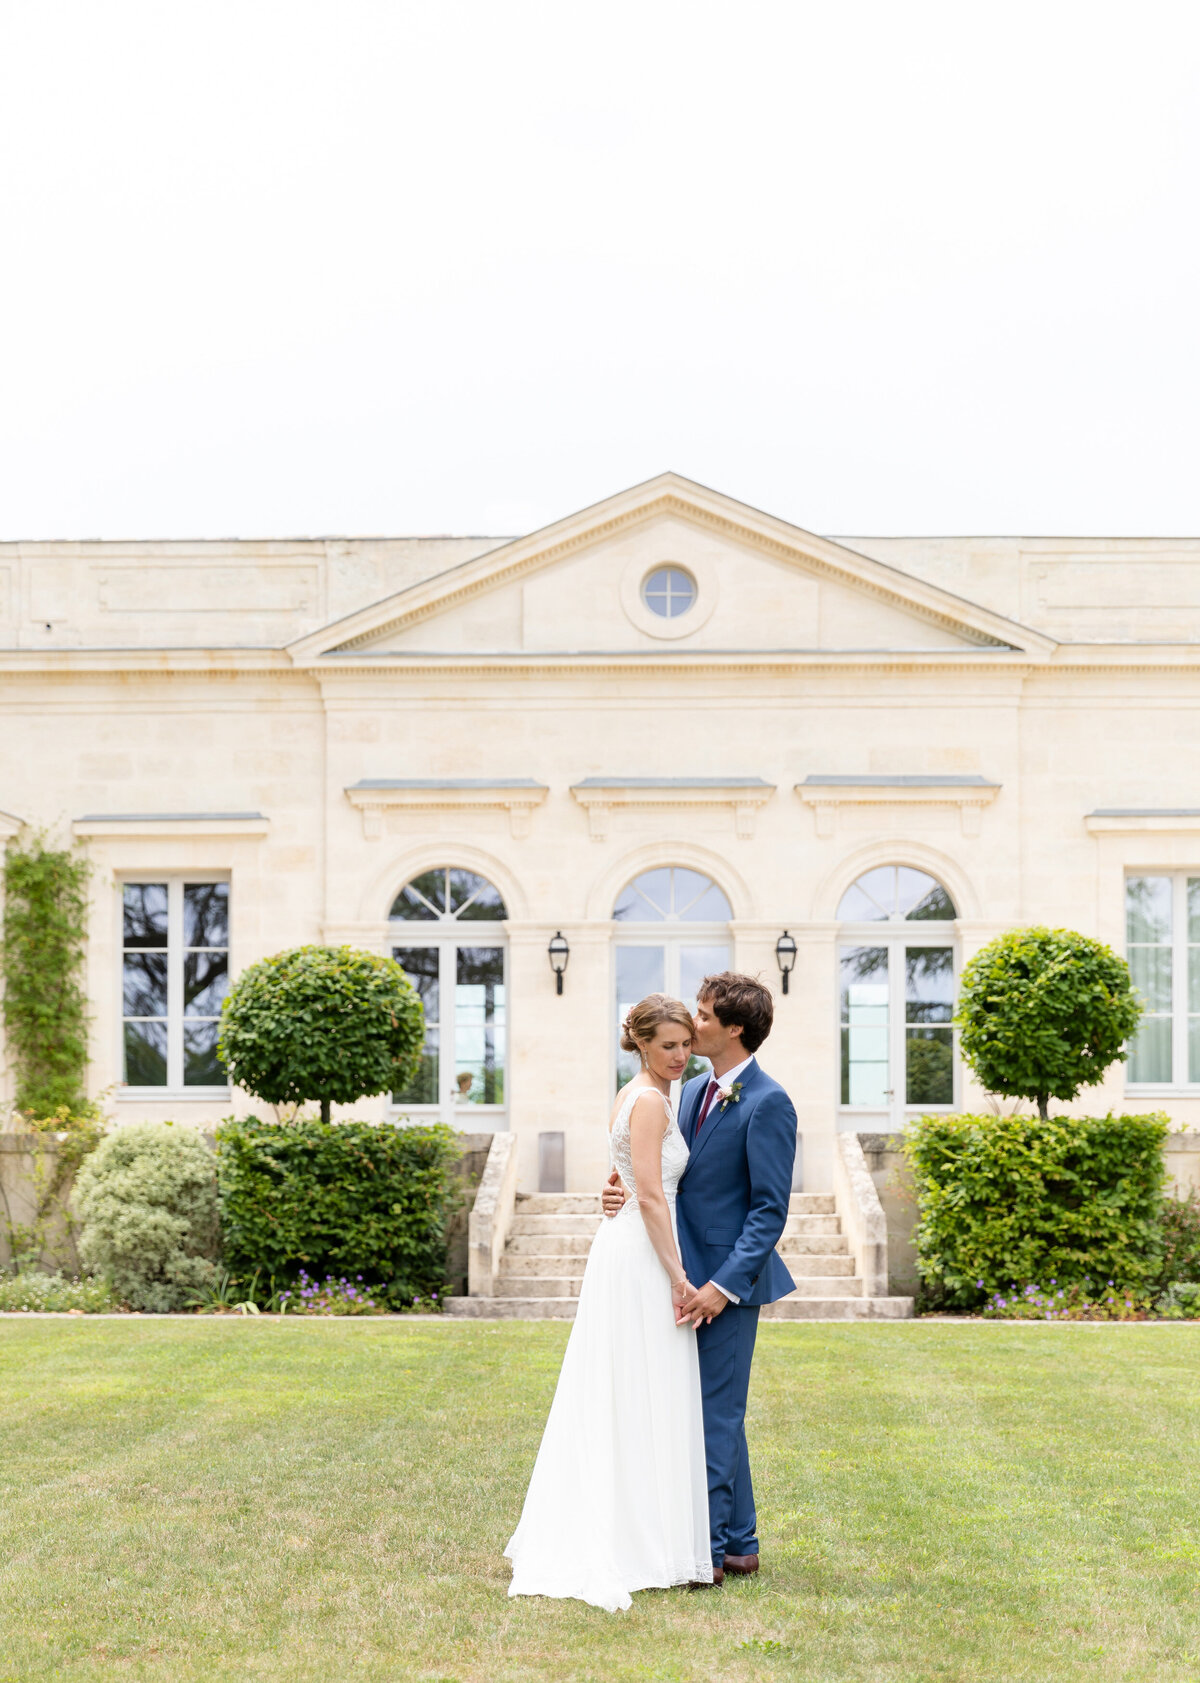 Bordeaux_France_0391_Daina_Olivier_Wedding_1787